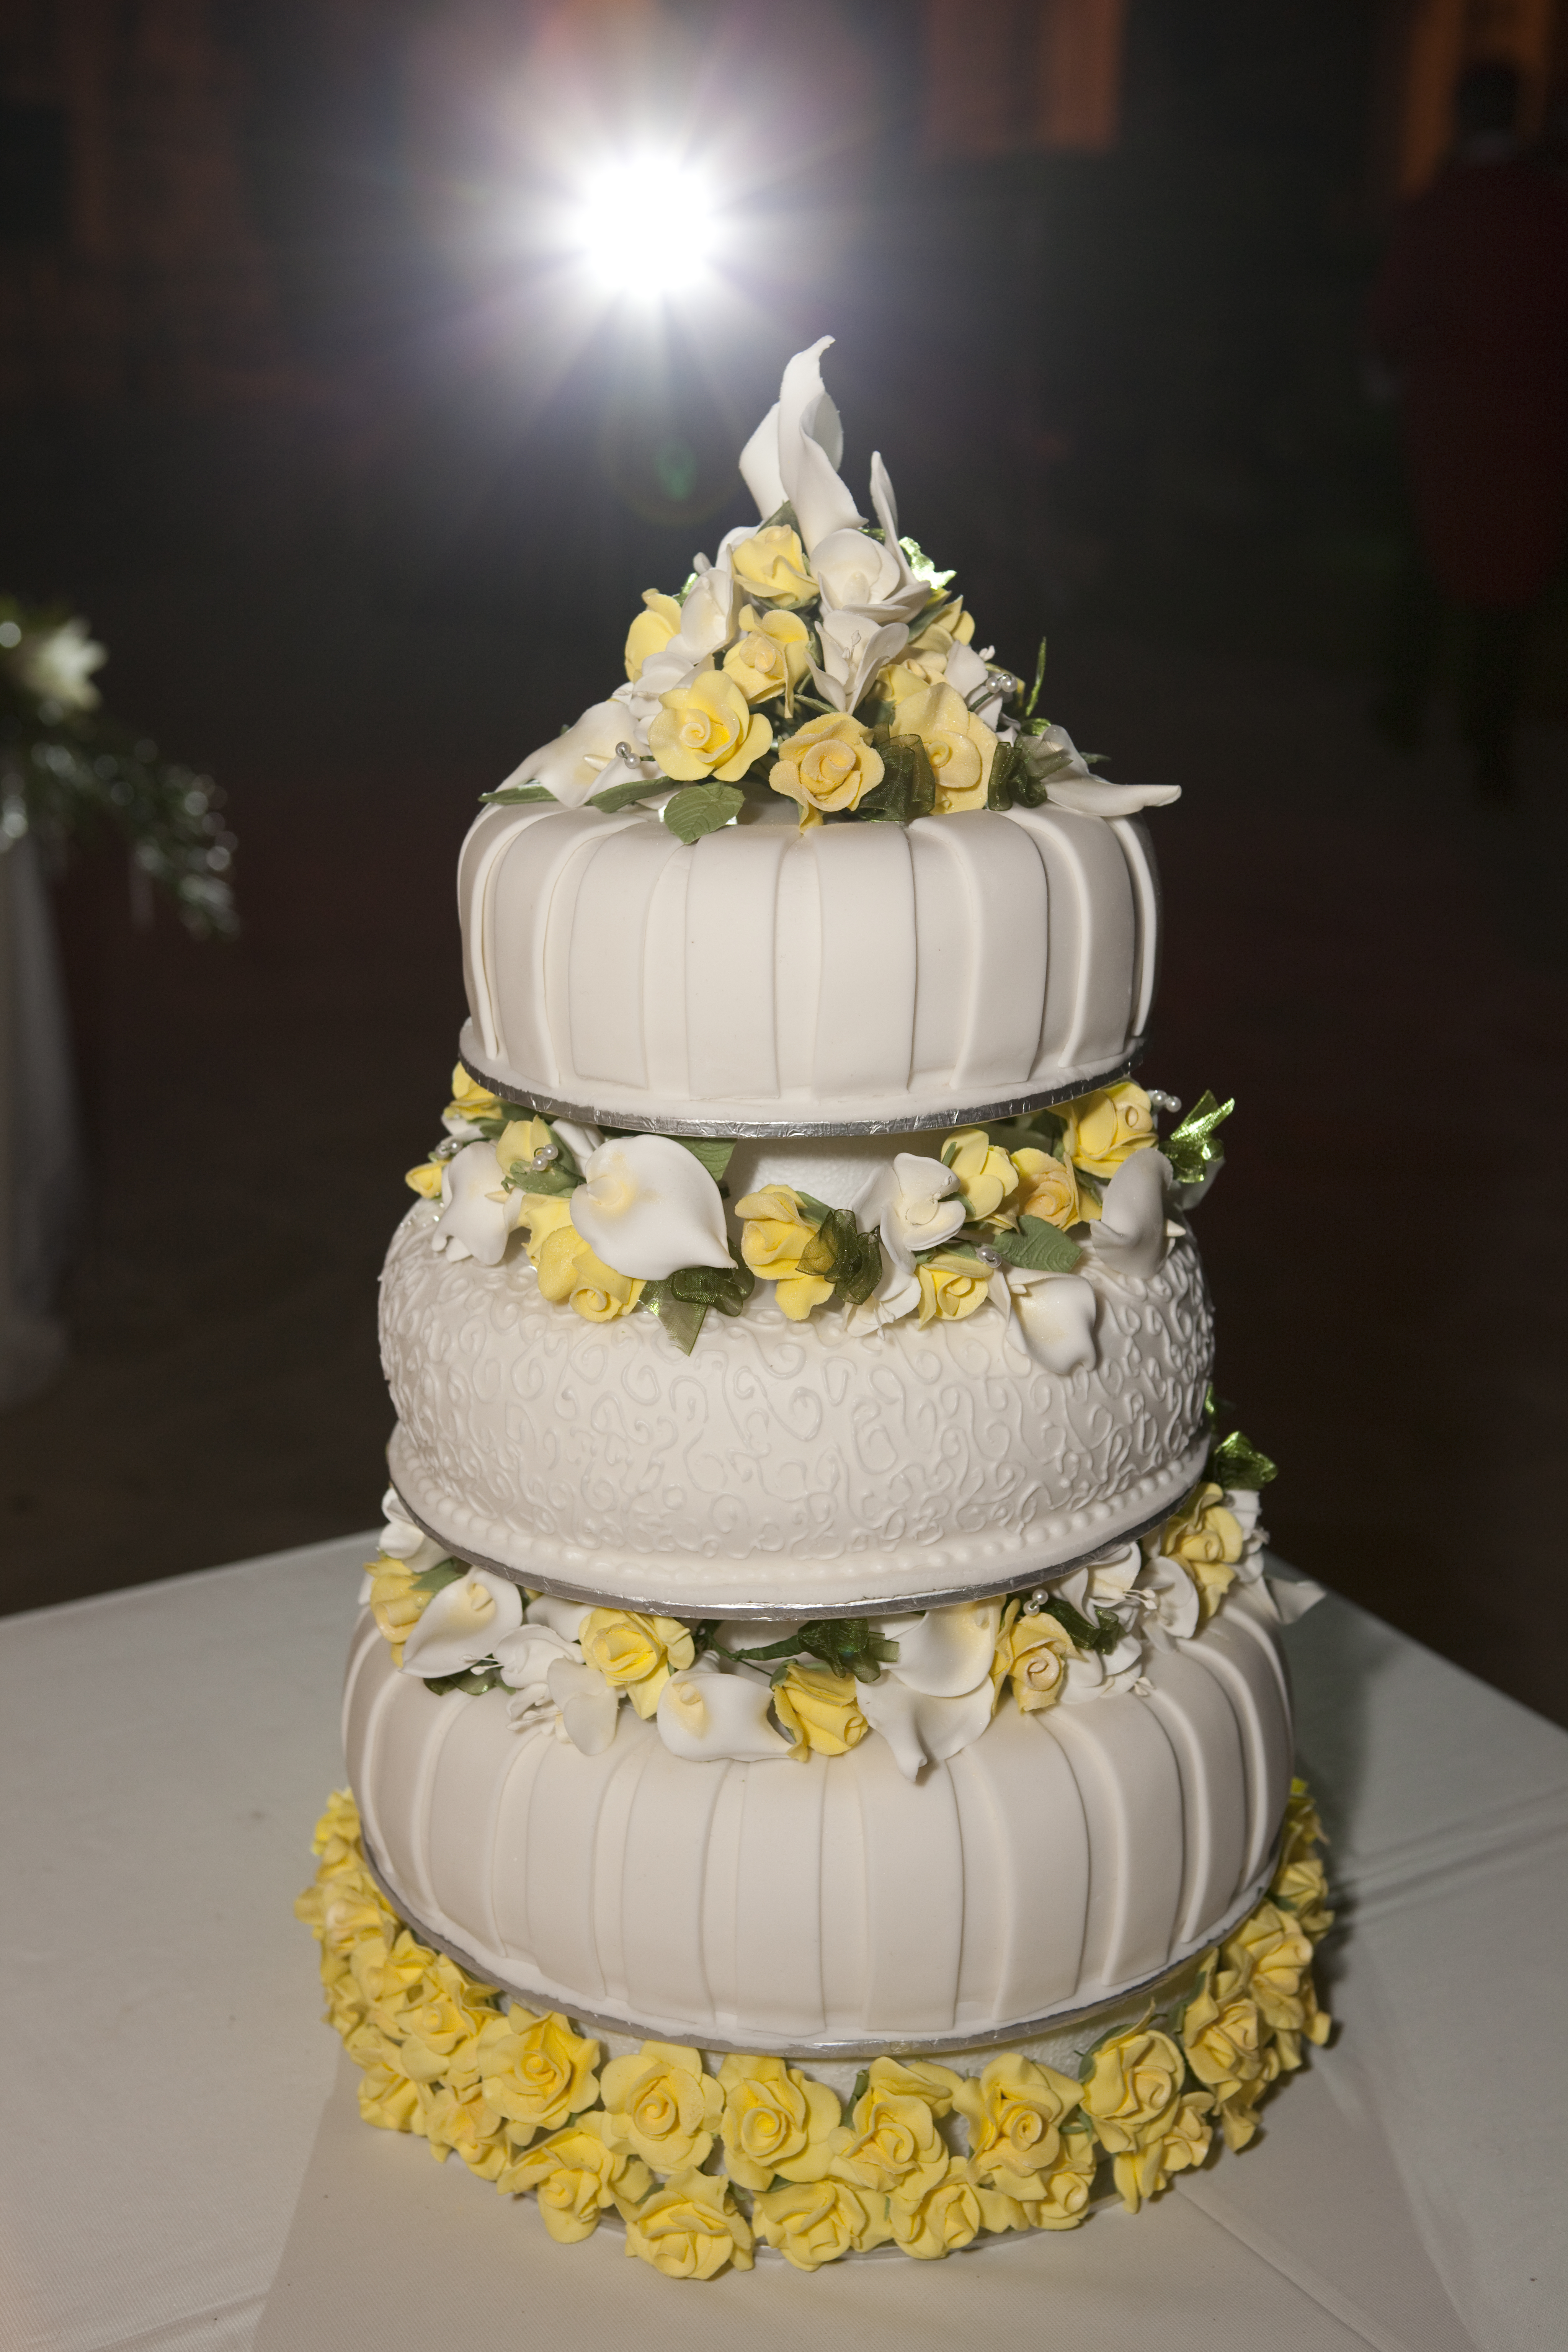 Wedding cakes in Northern Cyprus (18)